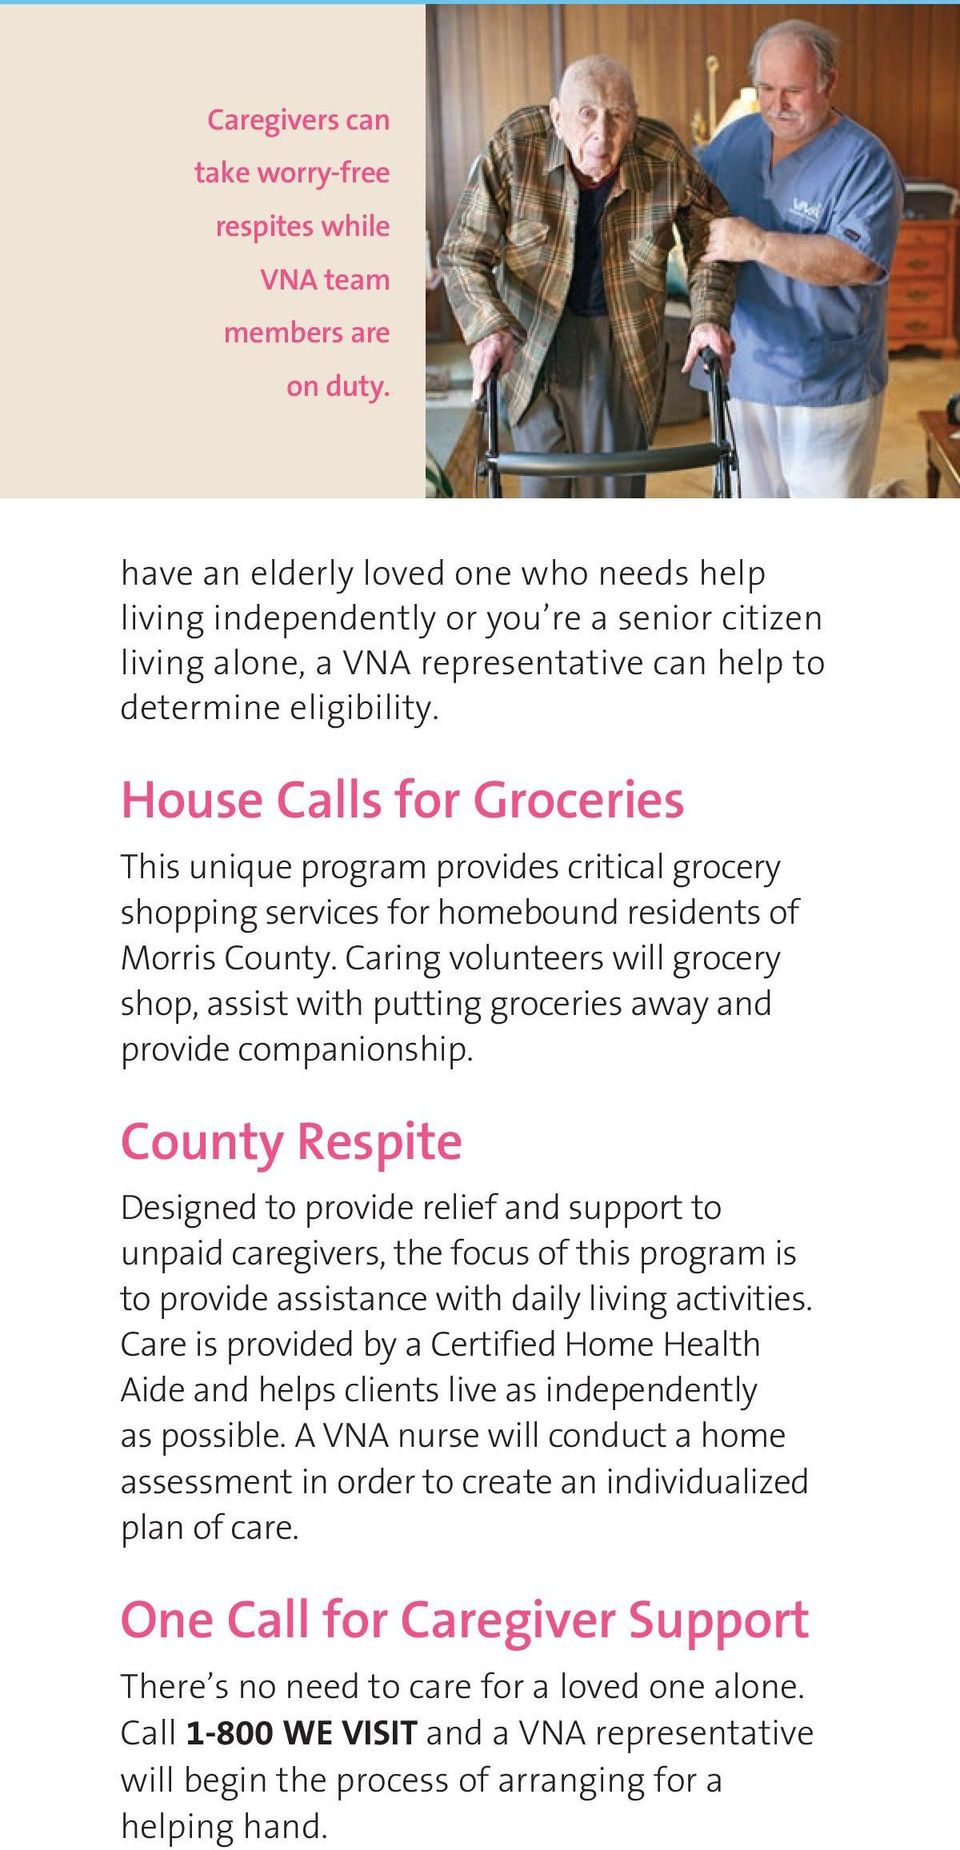 House Calls for Groceries This unique program provides critical grocery shopping services for homebound residents of Morris County.